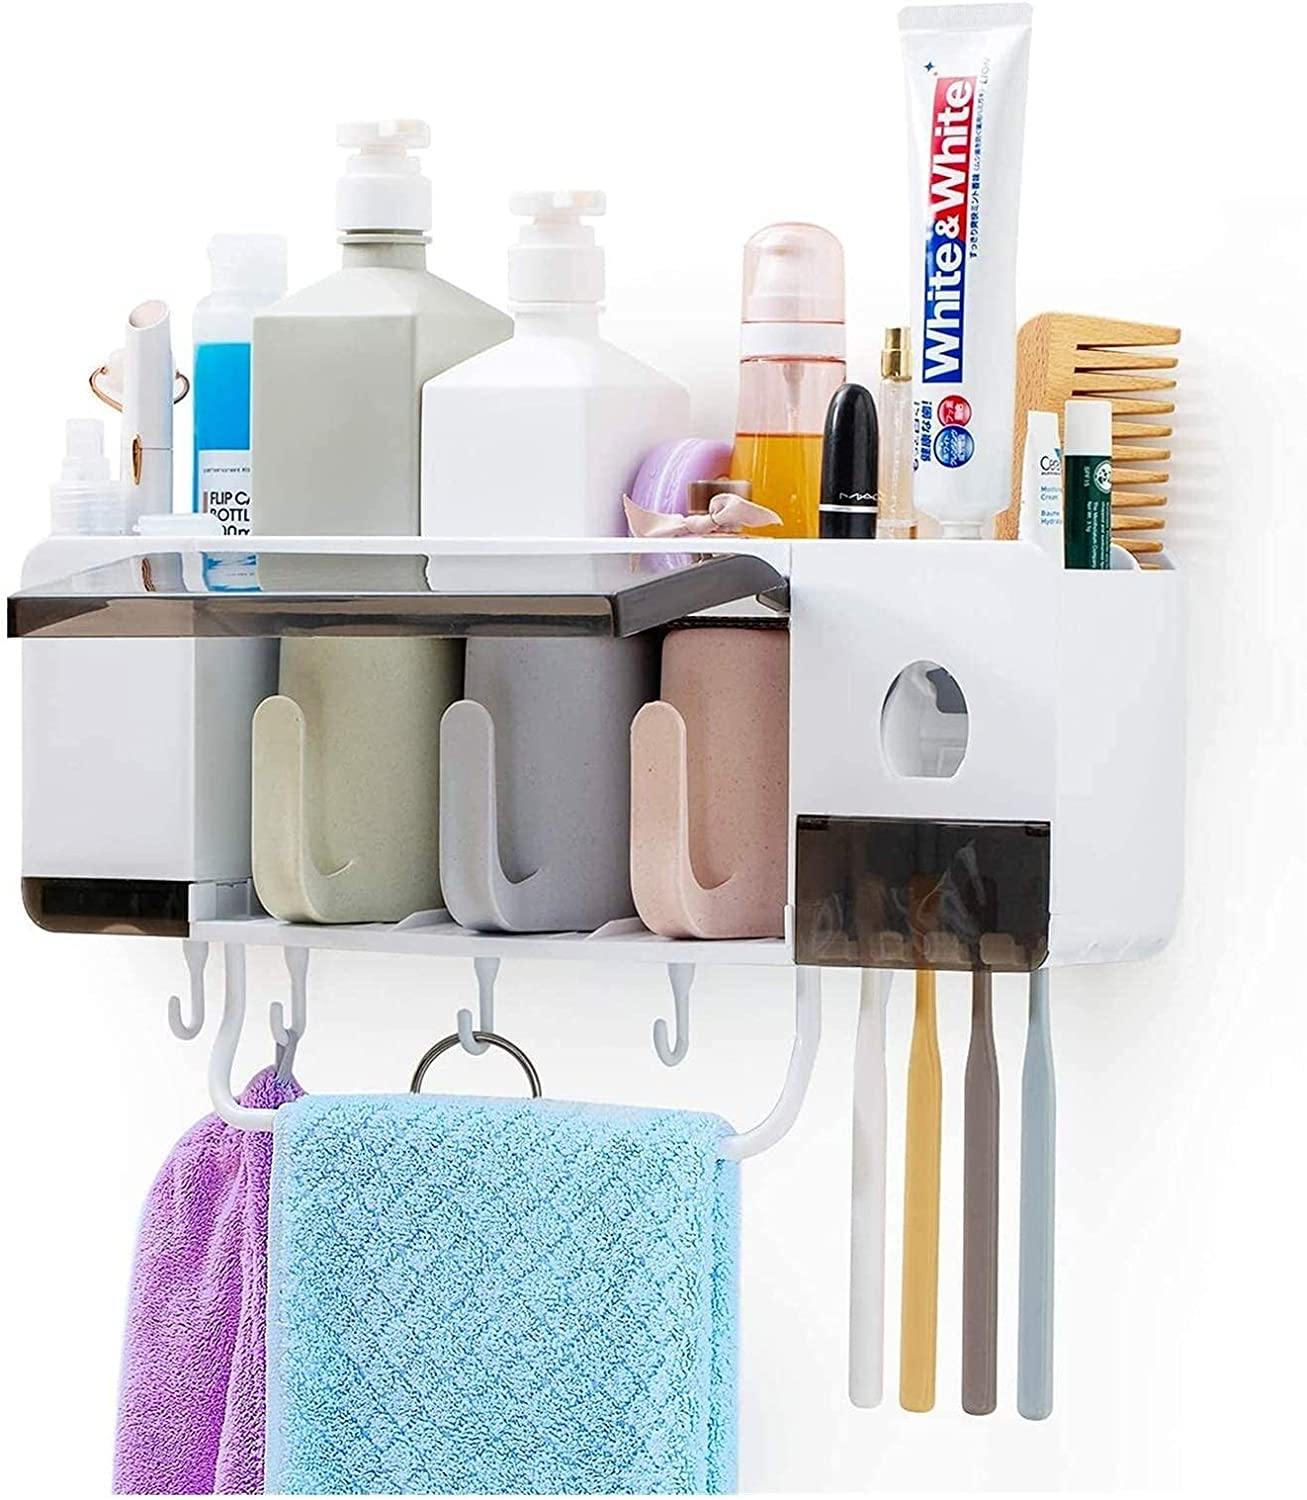 Automatic Toothpaste Squeezer Oklahoma City Mall Ranking TOP3 Wall Holder Toothbrush Mount and